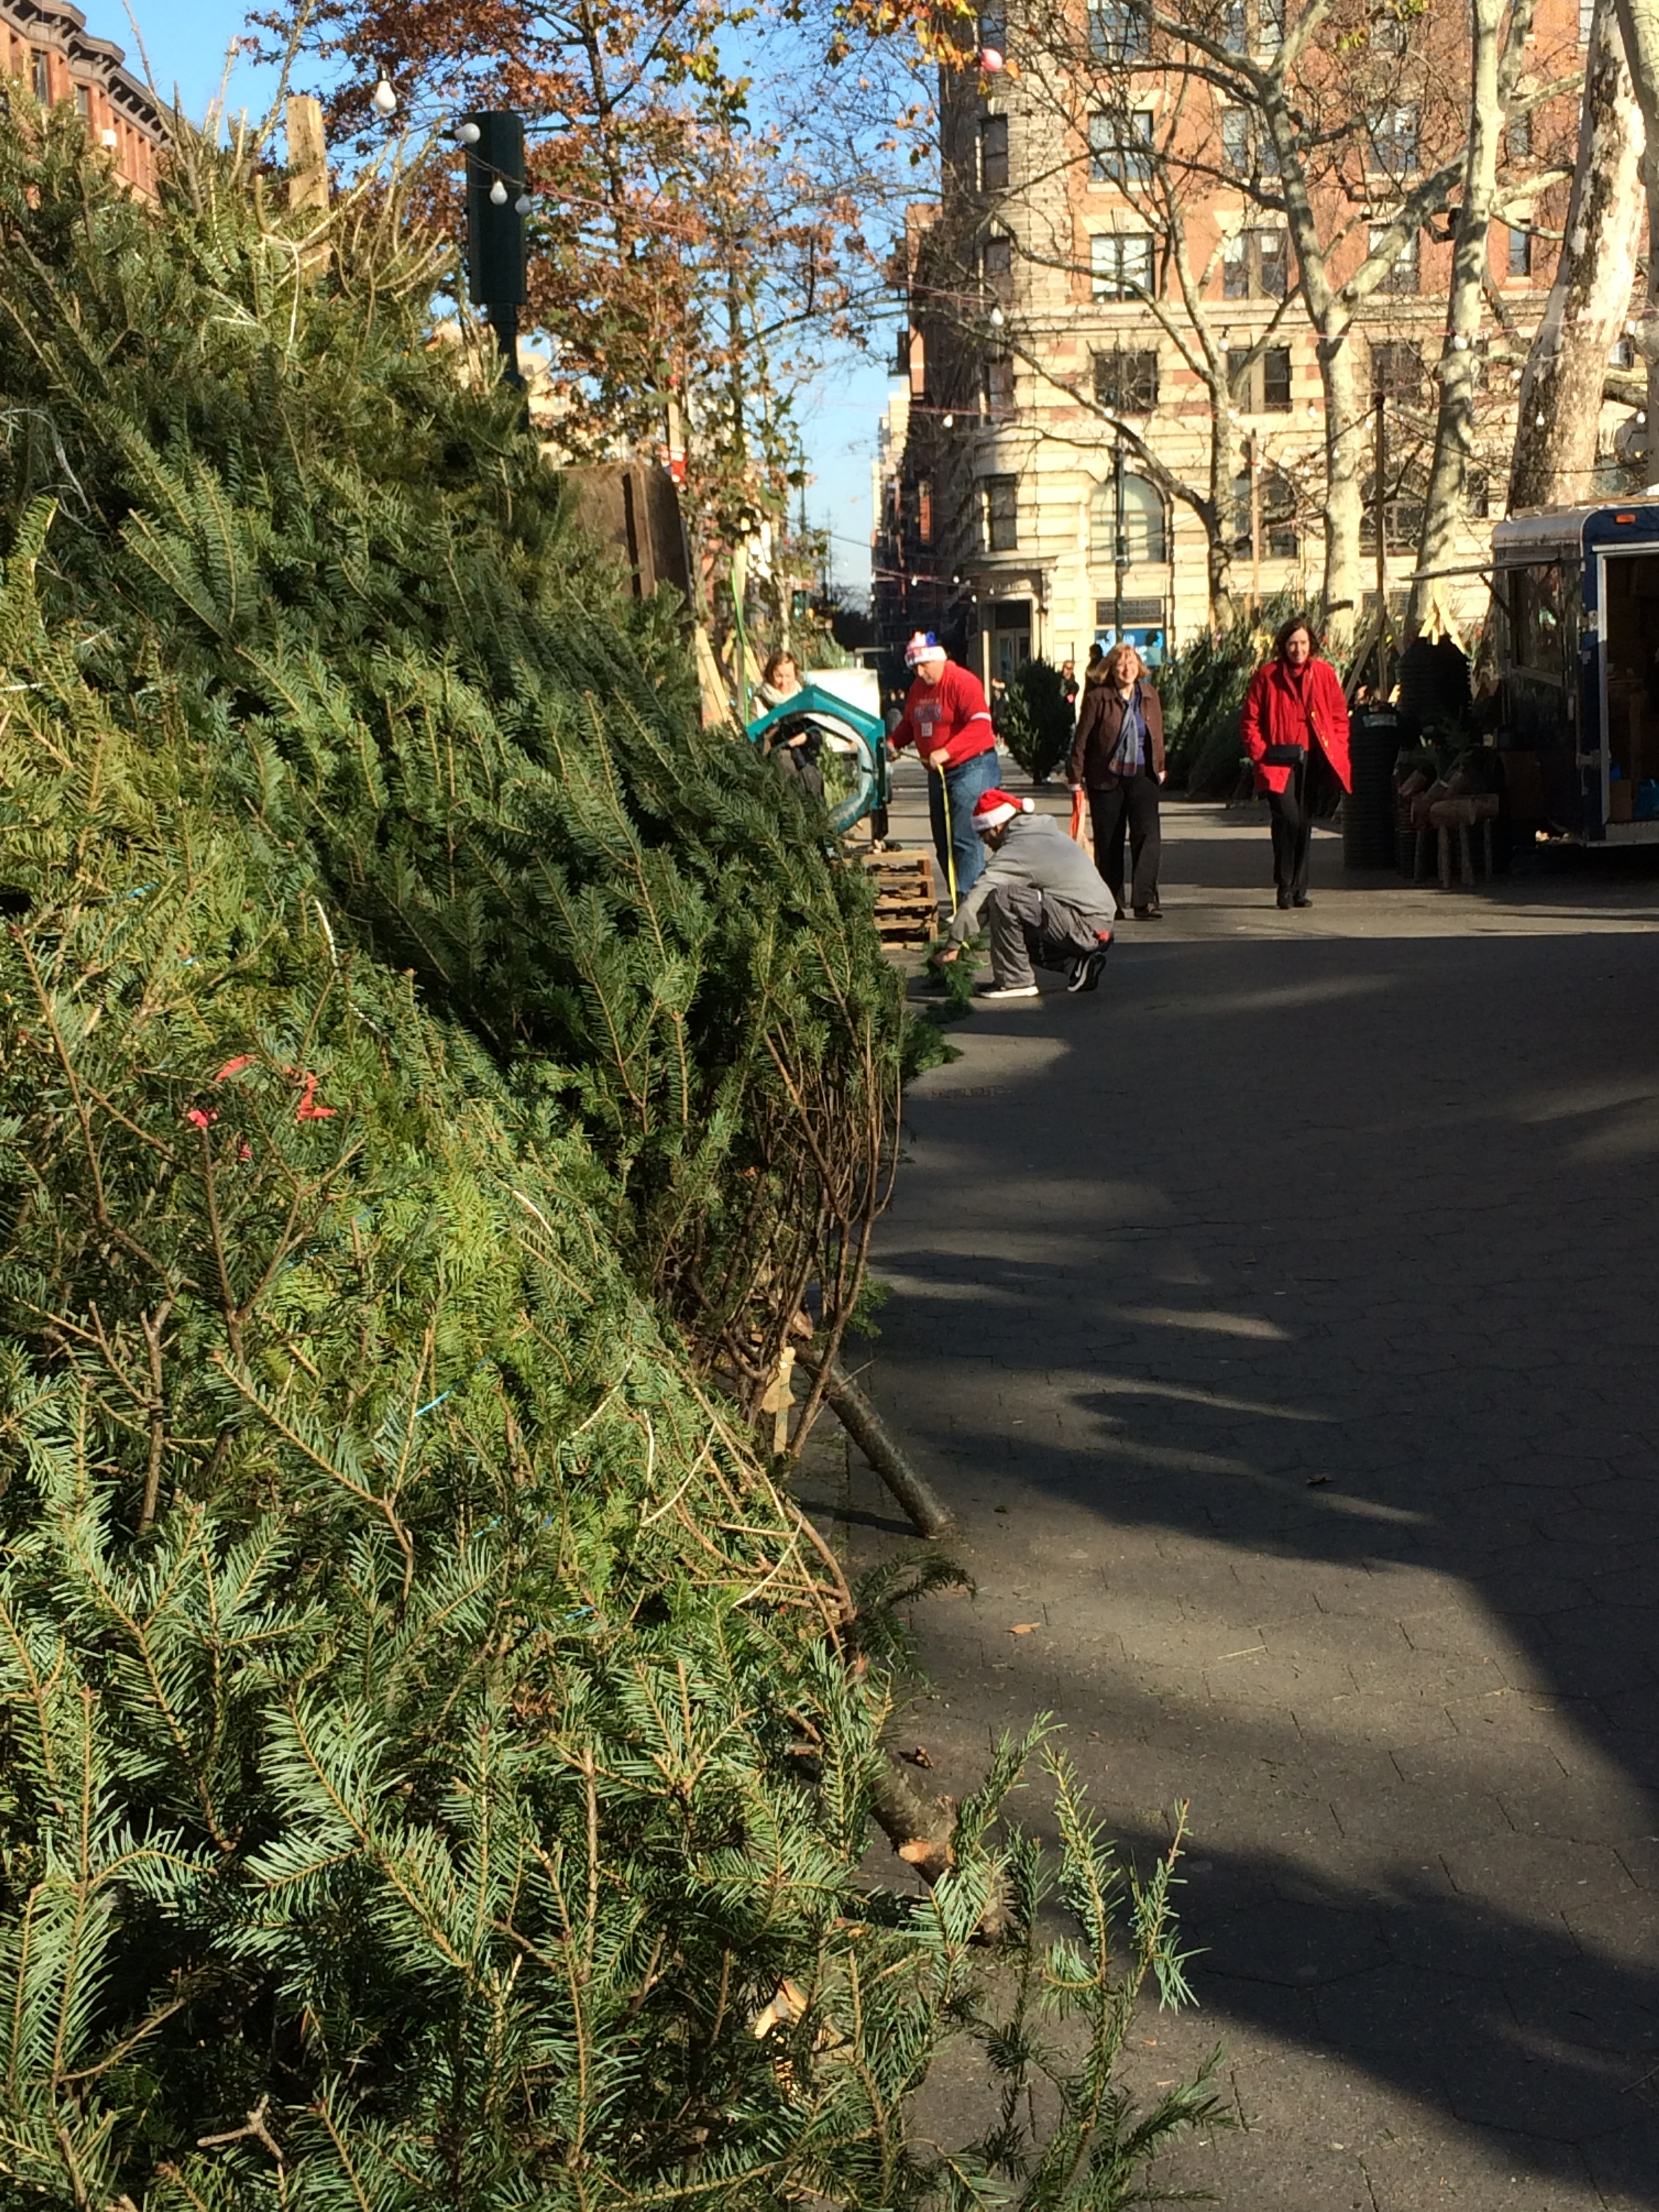 Christmas trees at a NYC street market | Oh, the Places We See . . .